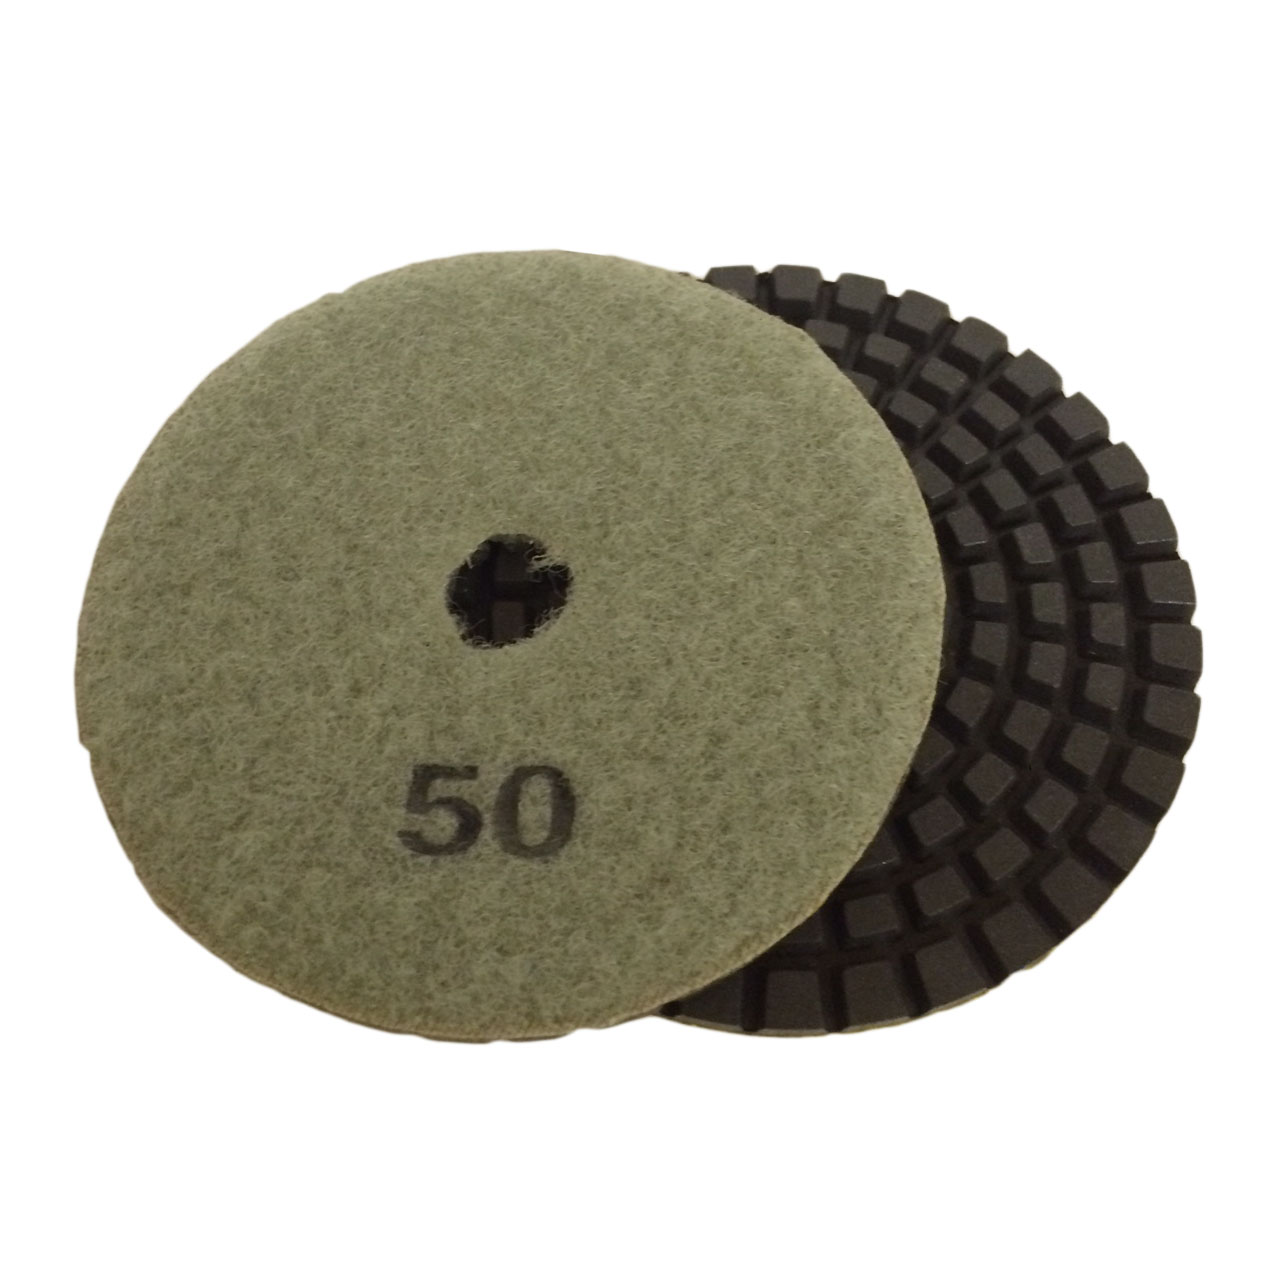 3 Inch  50 Grit Diamond Disc to fit a Flex Angle Grinder